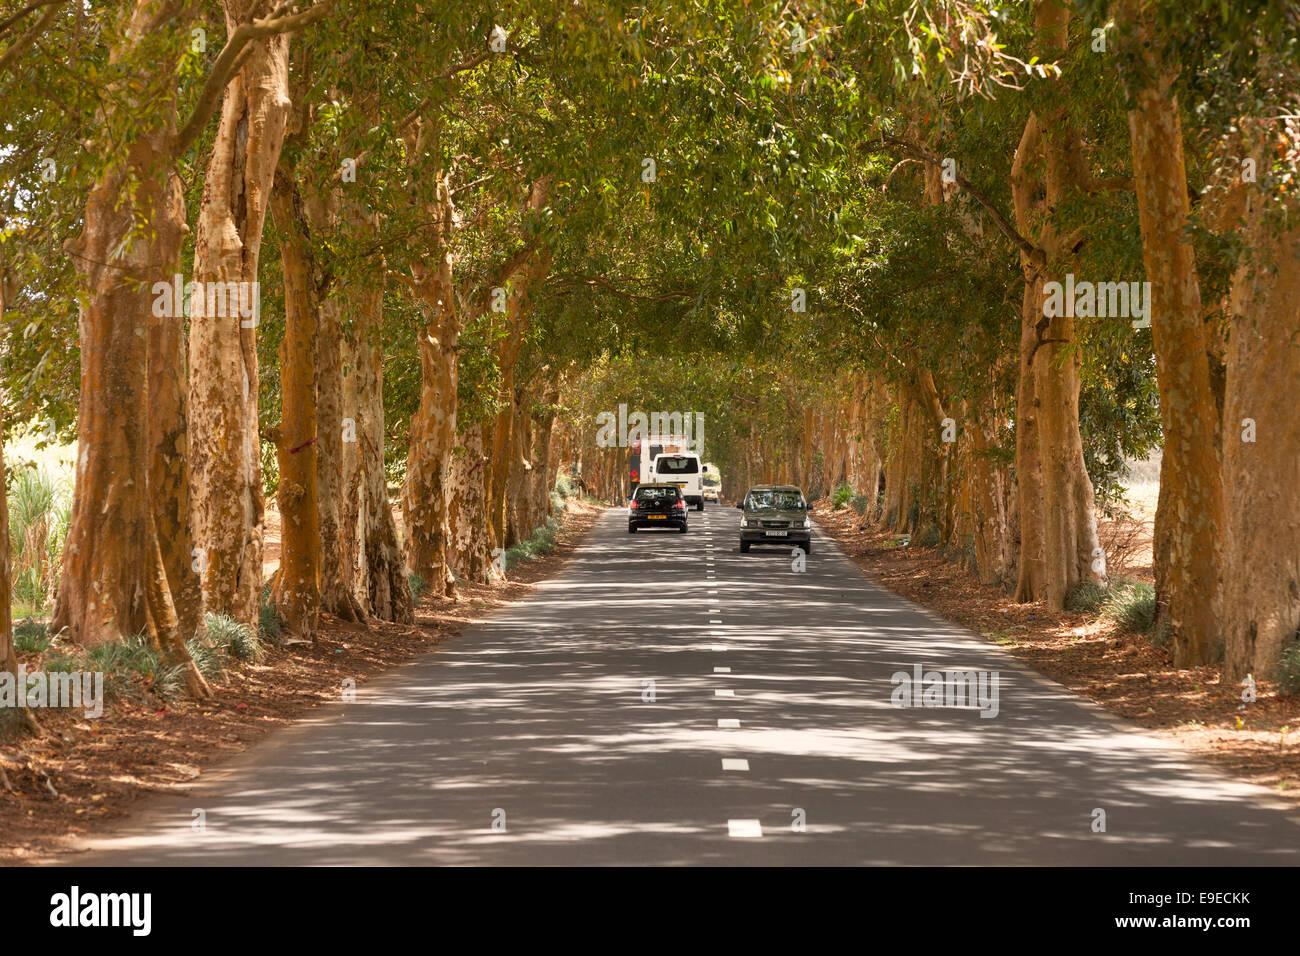 Vehicles driving on the road between Flacq and Port Louis, Mauritius - Stock Image